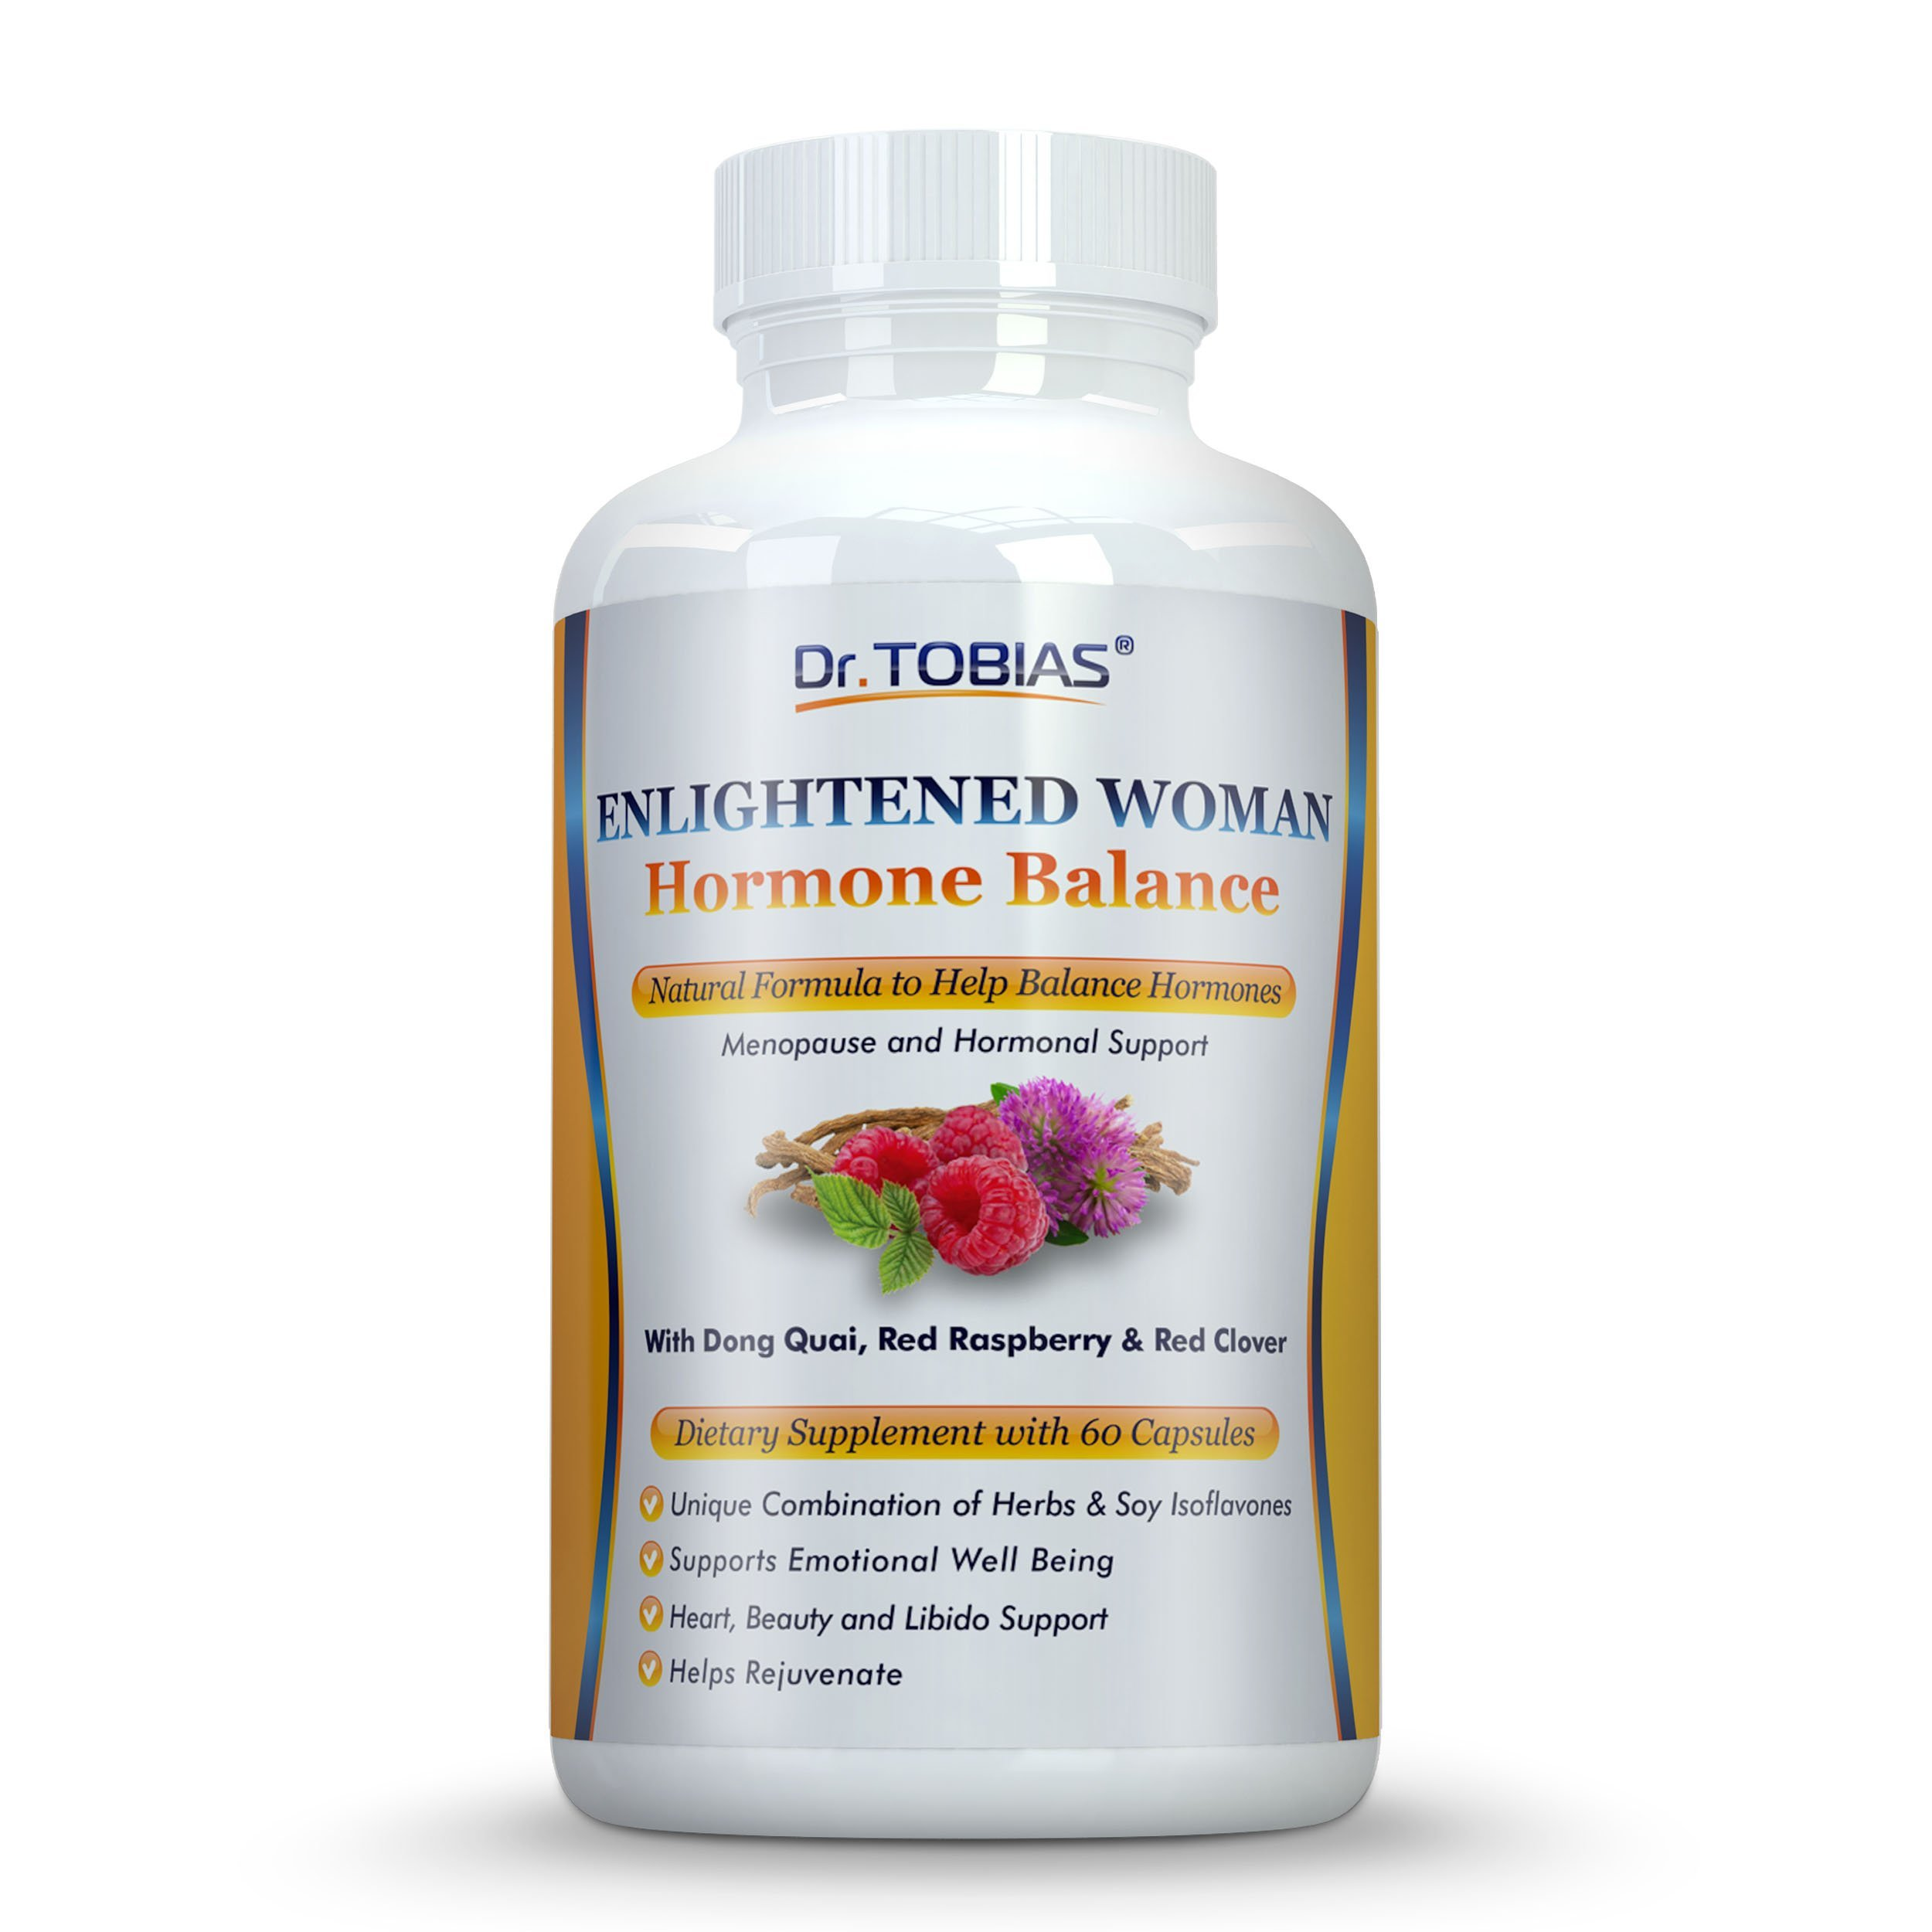 Dr. Tobias Menopause Supplement for Menopausal Support & Hot Flash Relief - Natural Help for PMS, Adrenal & Hormone Balance, Women's Health & Well-being